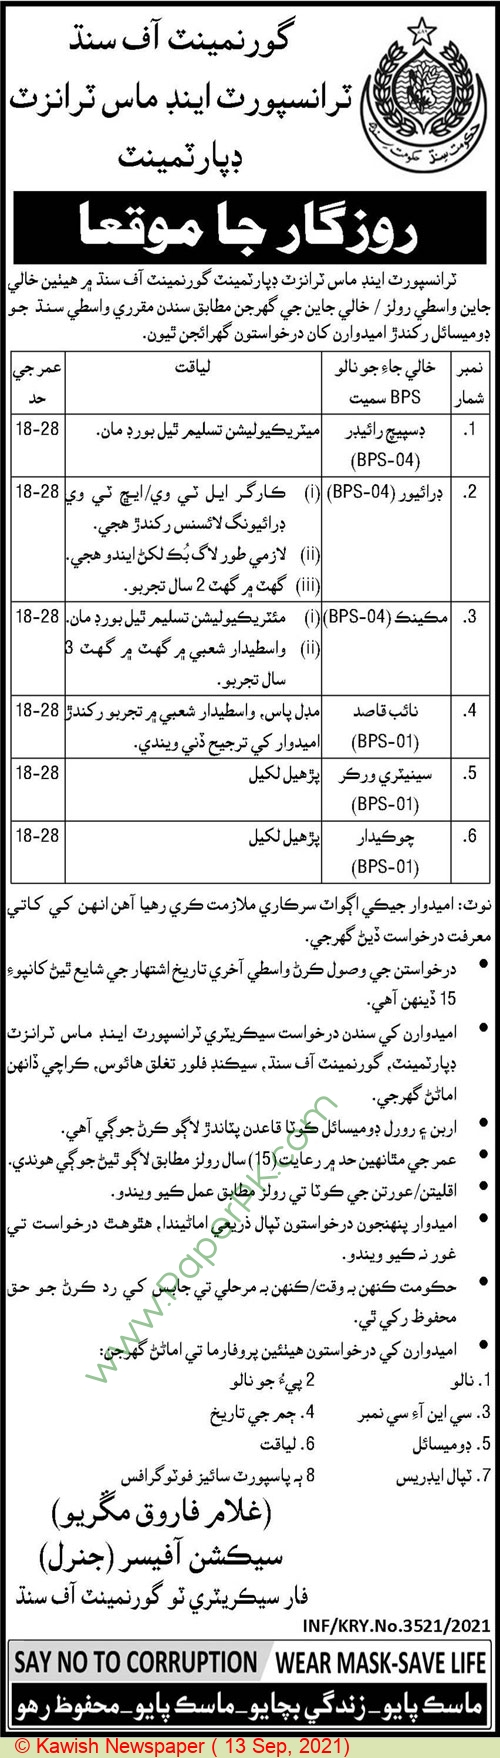 Government of Sindh jobs newspaper ad for Driver in Karachi on 2021-09-13